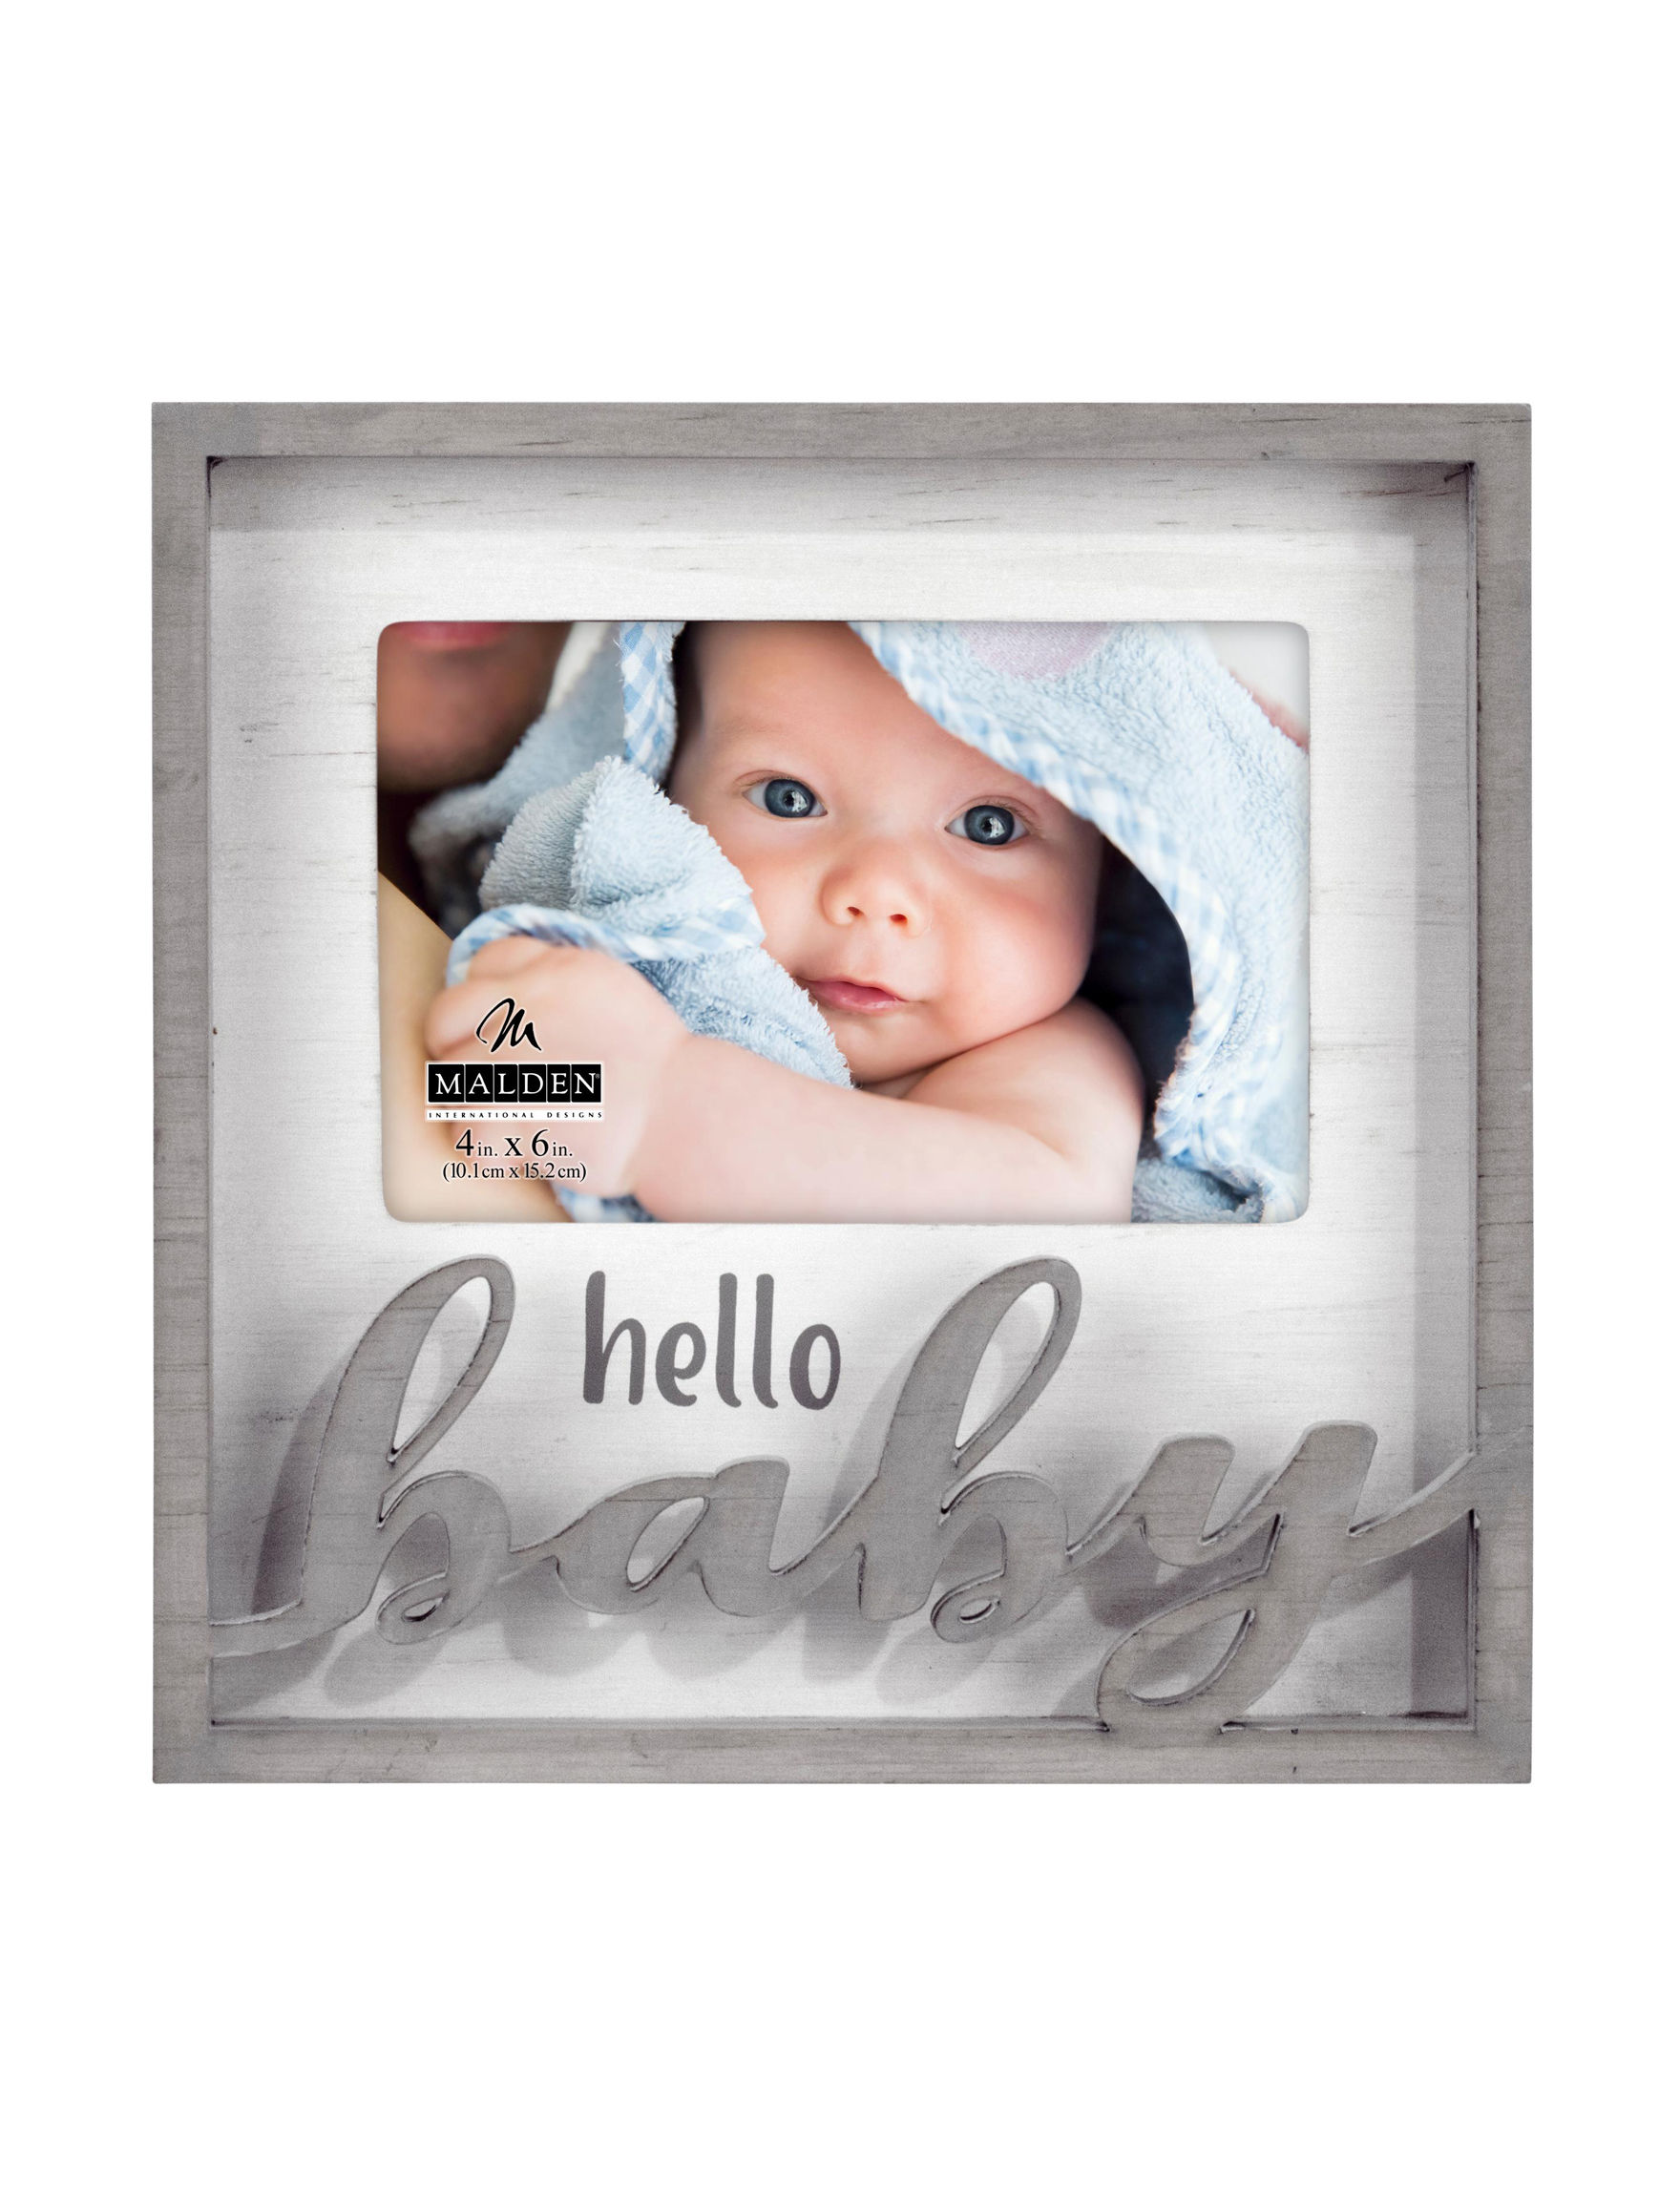 Malden Grey Decorative Objects Frames & Shadow Boxes